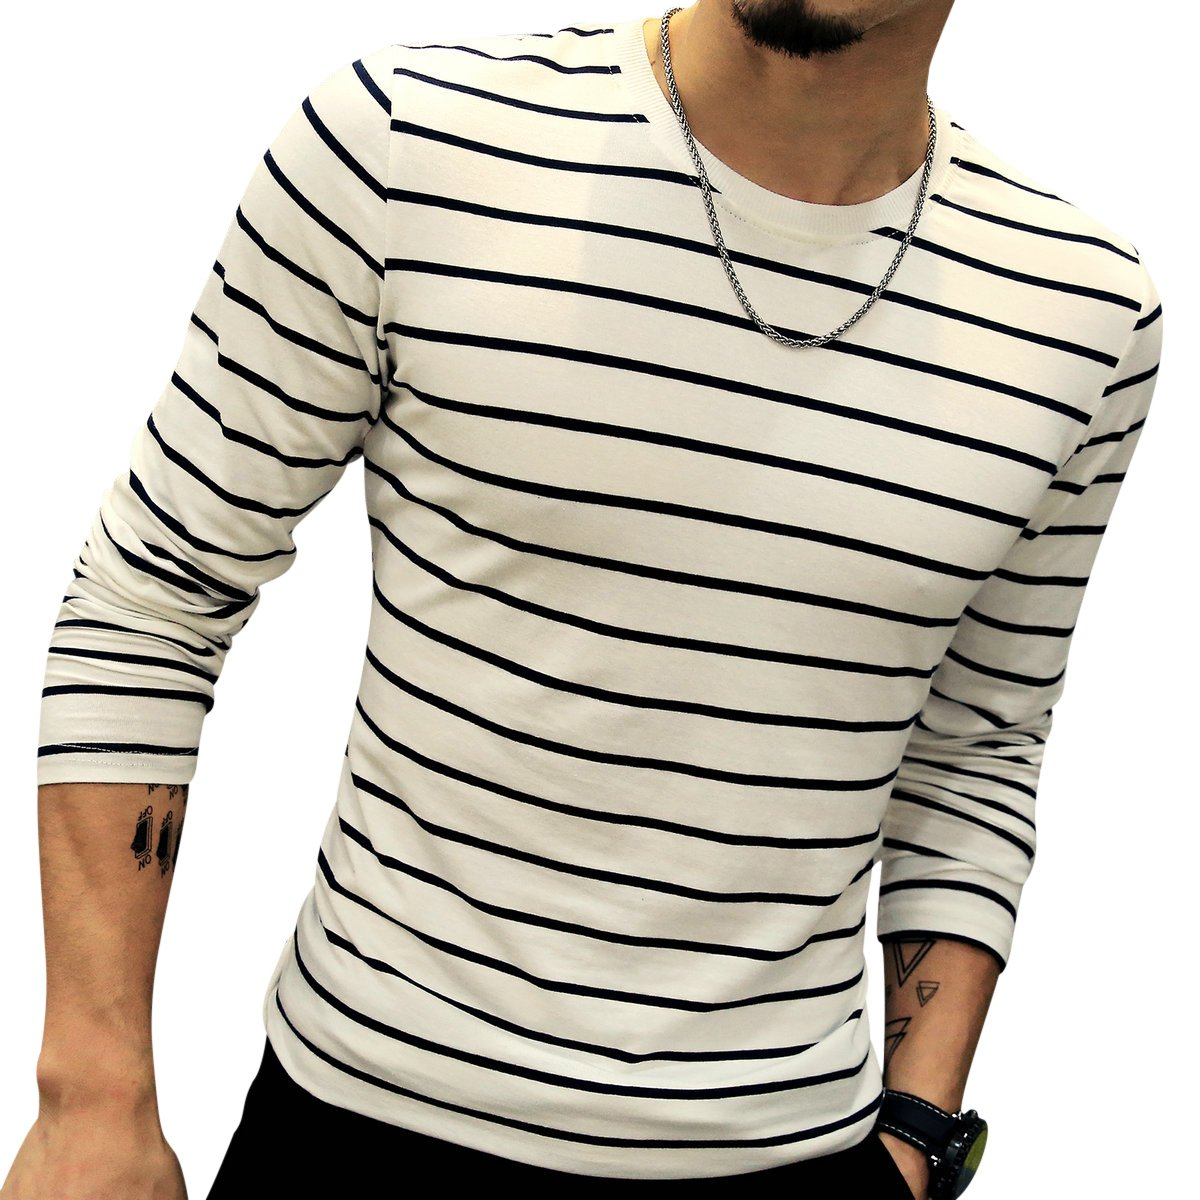 LOGEEYAR Mens Long-Sleeve Cotton Fitted Contrast Color Stitching Stripe Slim T-Shirt (White,M) by LOGEEYAR (Image #1)